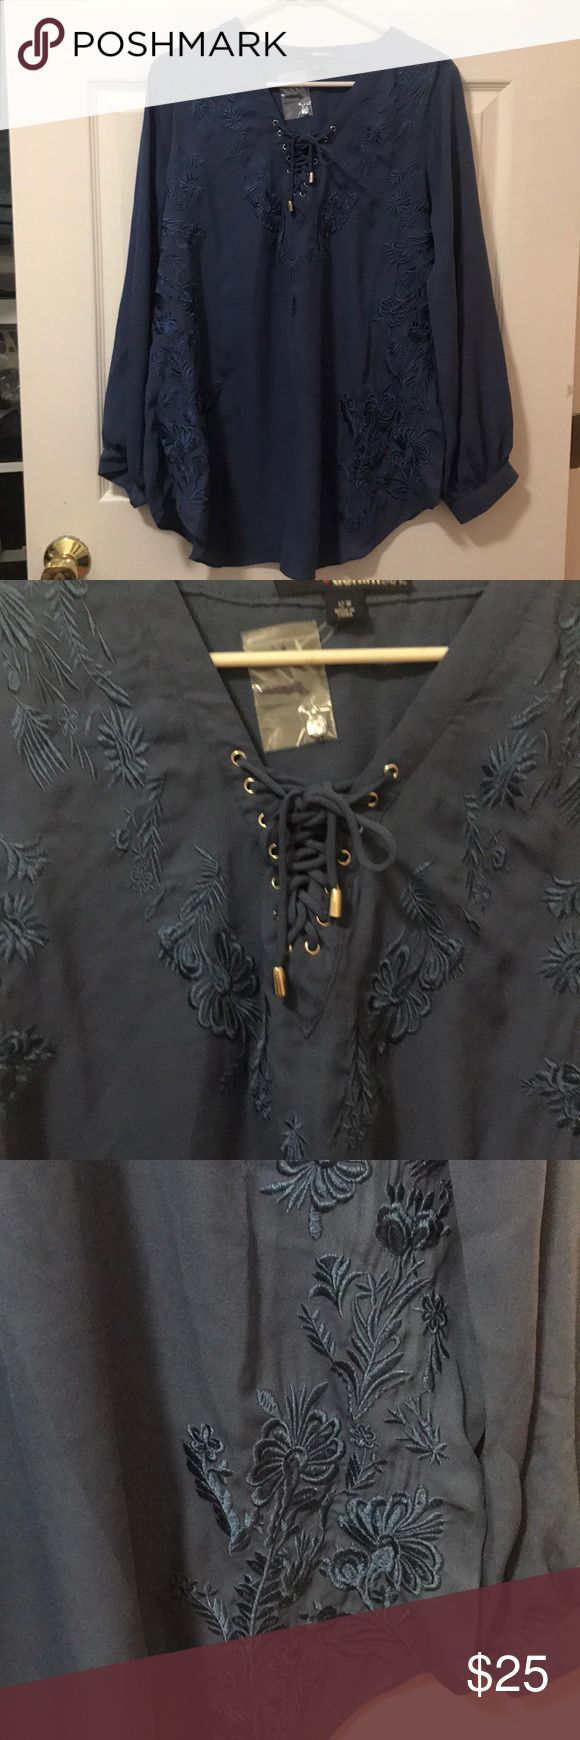 Brand new with tags DENIM 24/7 blouse!! Beautiful blue dress blouse!! Never worn!! From Denim 24/7!! Beautiful appliqué on front and back!! Can be worn with jeans or leggings! Or dress pants for work! Denim 24/7 Tops